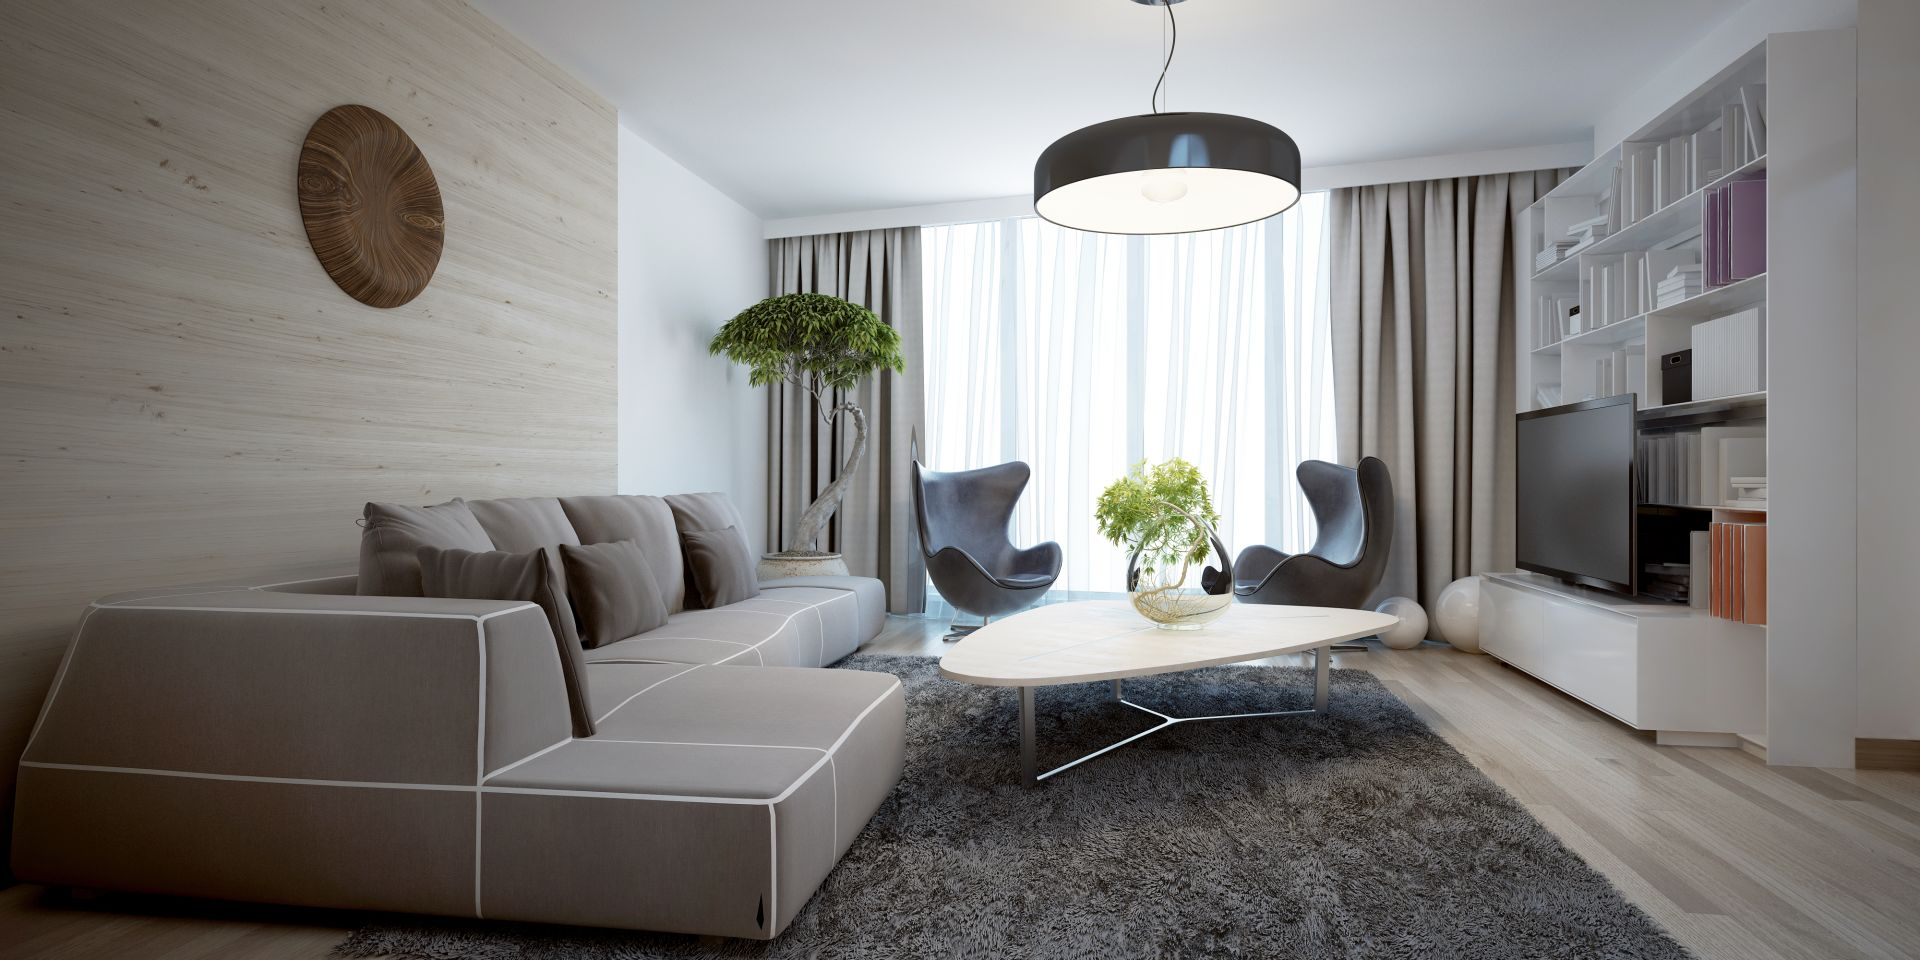 Smile on the Inside: Interior Decorating Ideas